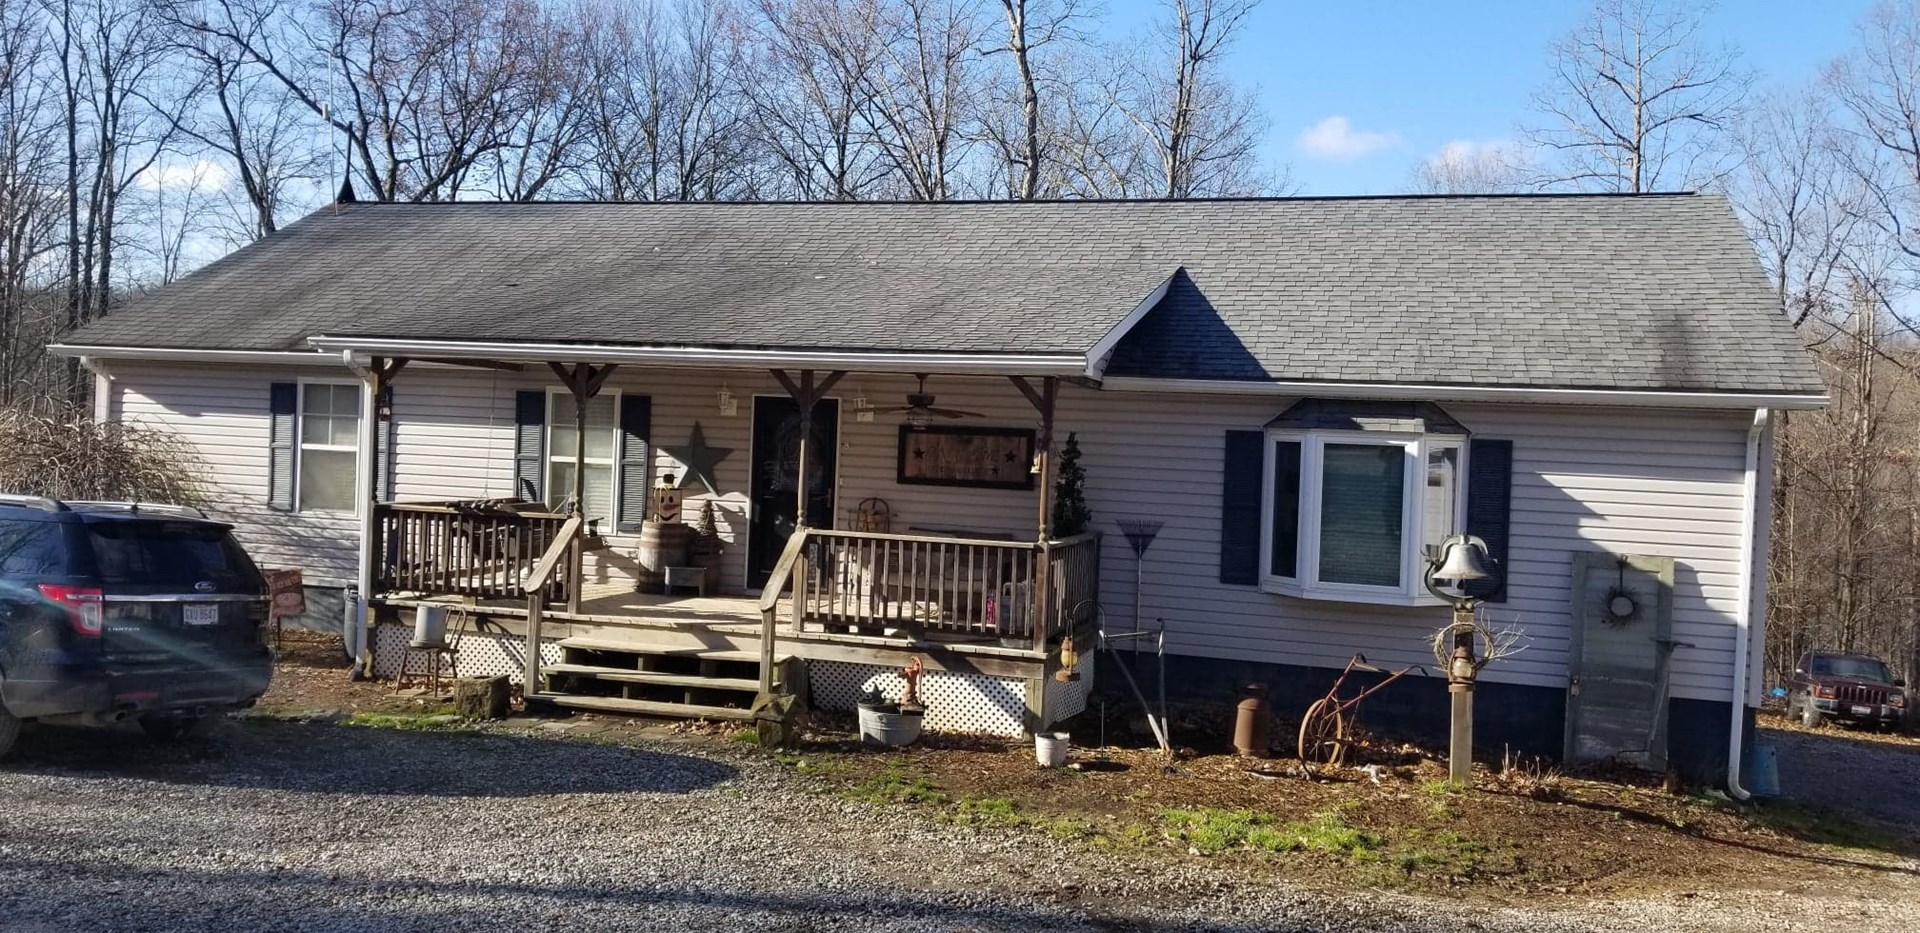 Monroe County, OH Ranch home on full basement